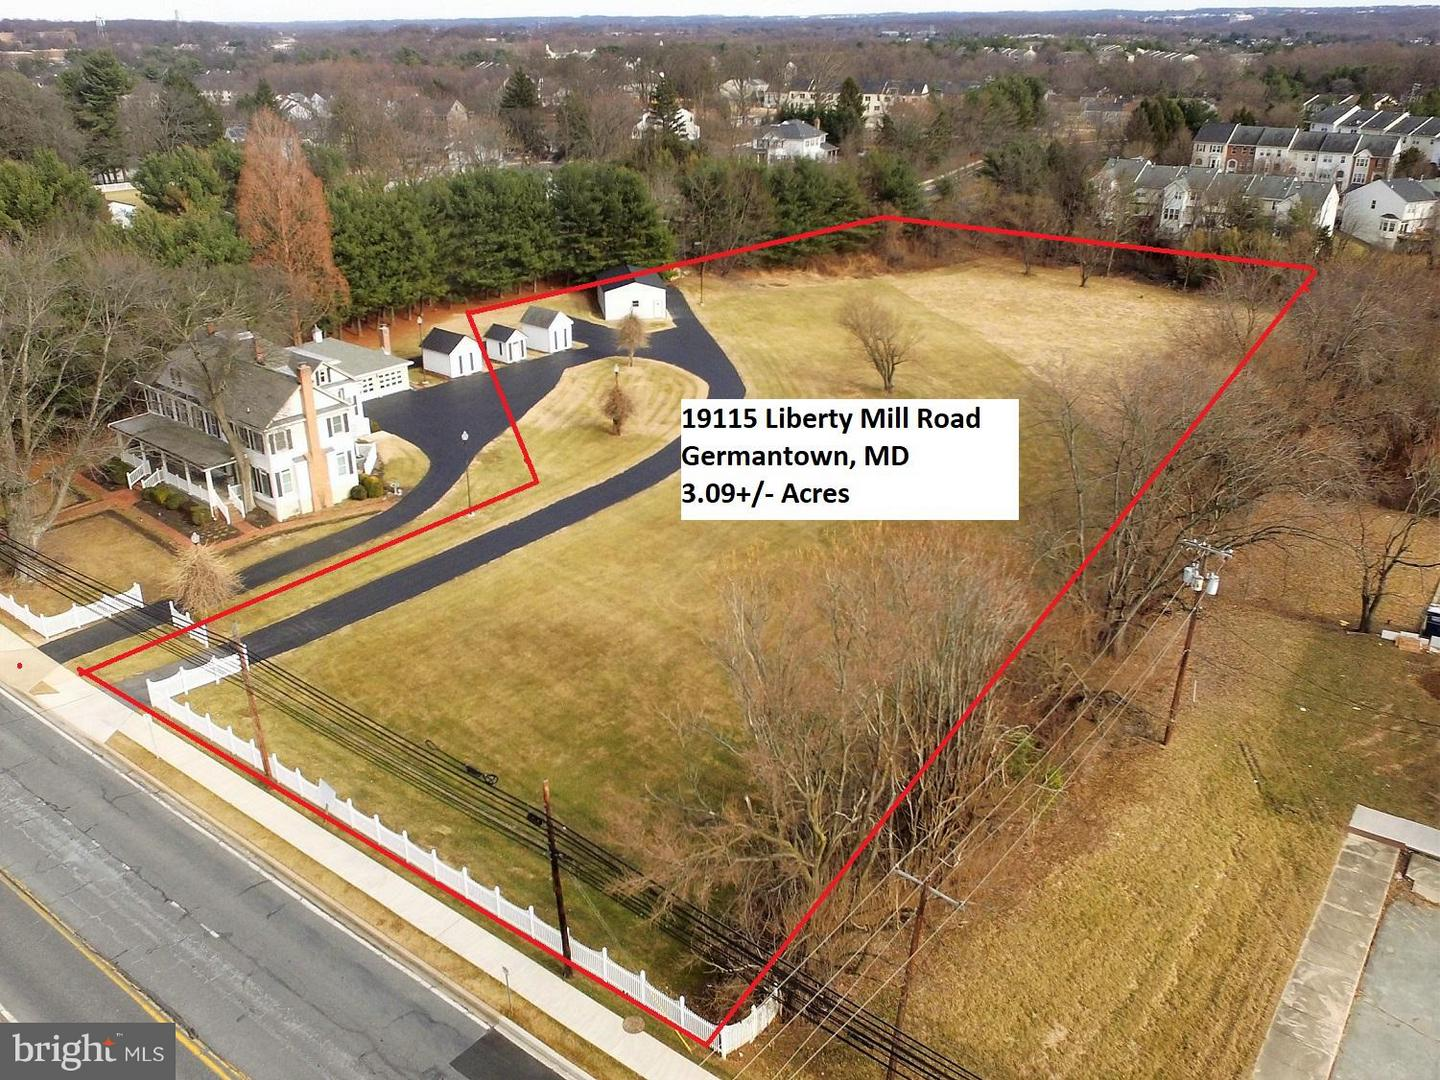 19115 liberty mill road germantown maryland 20874 ttr sotheby s